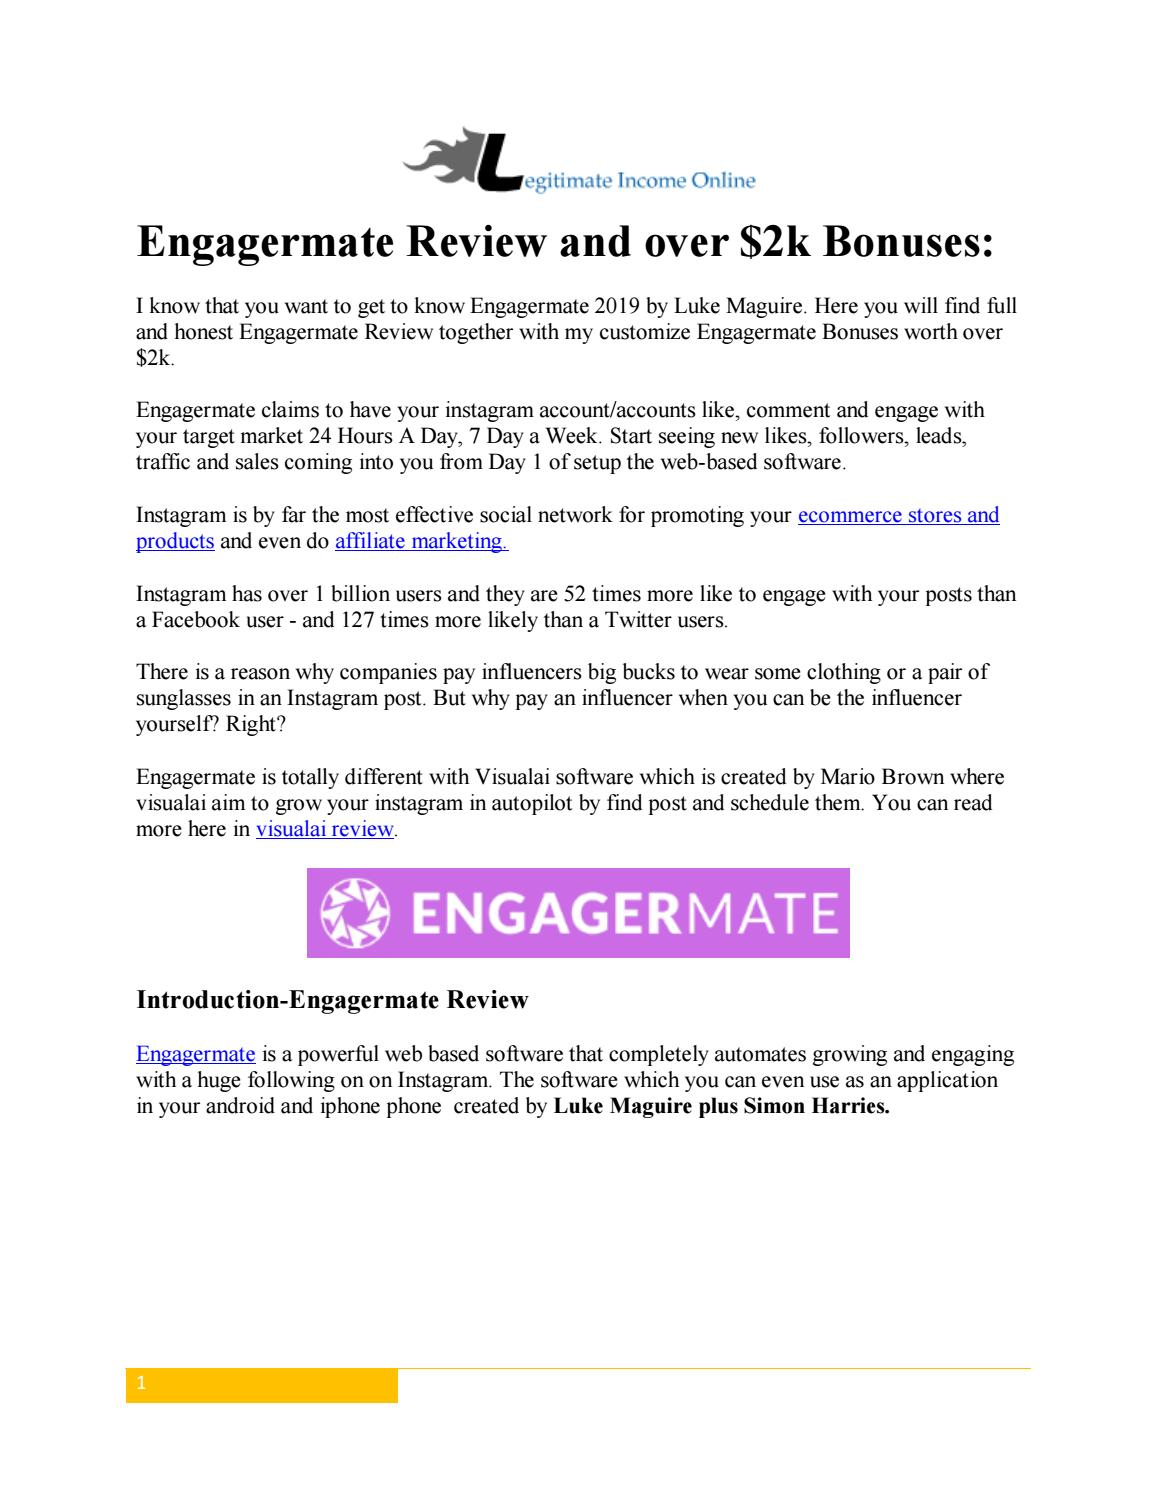 Engagermate Review By Luke Maguire and over $2k Bonuses-Instagram